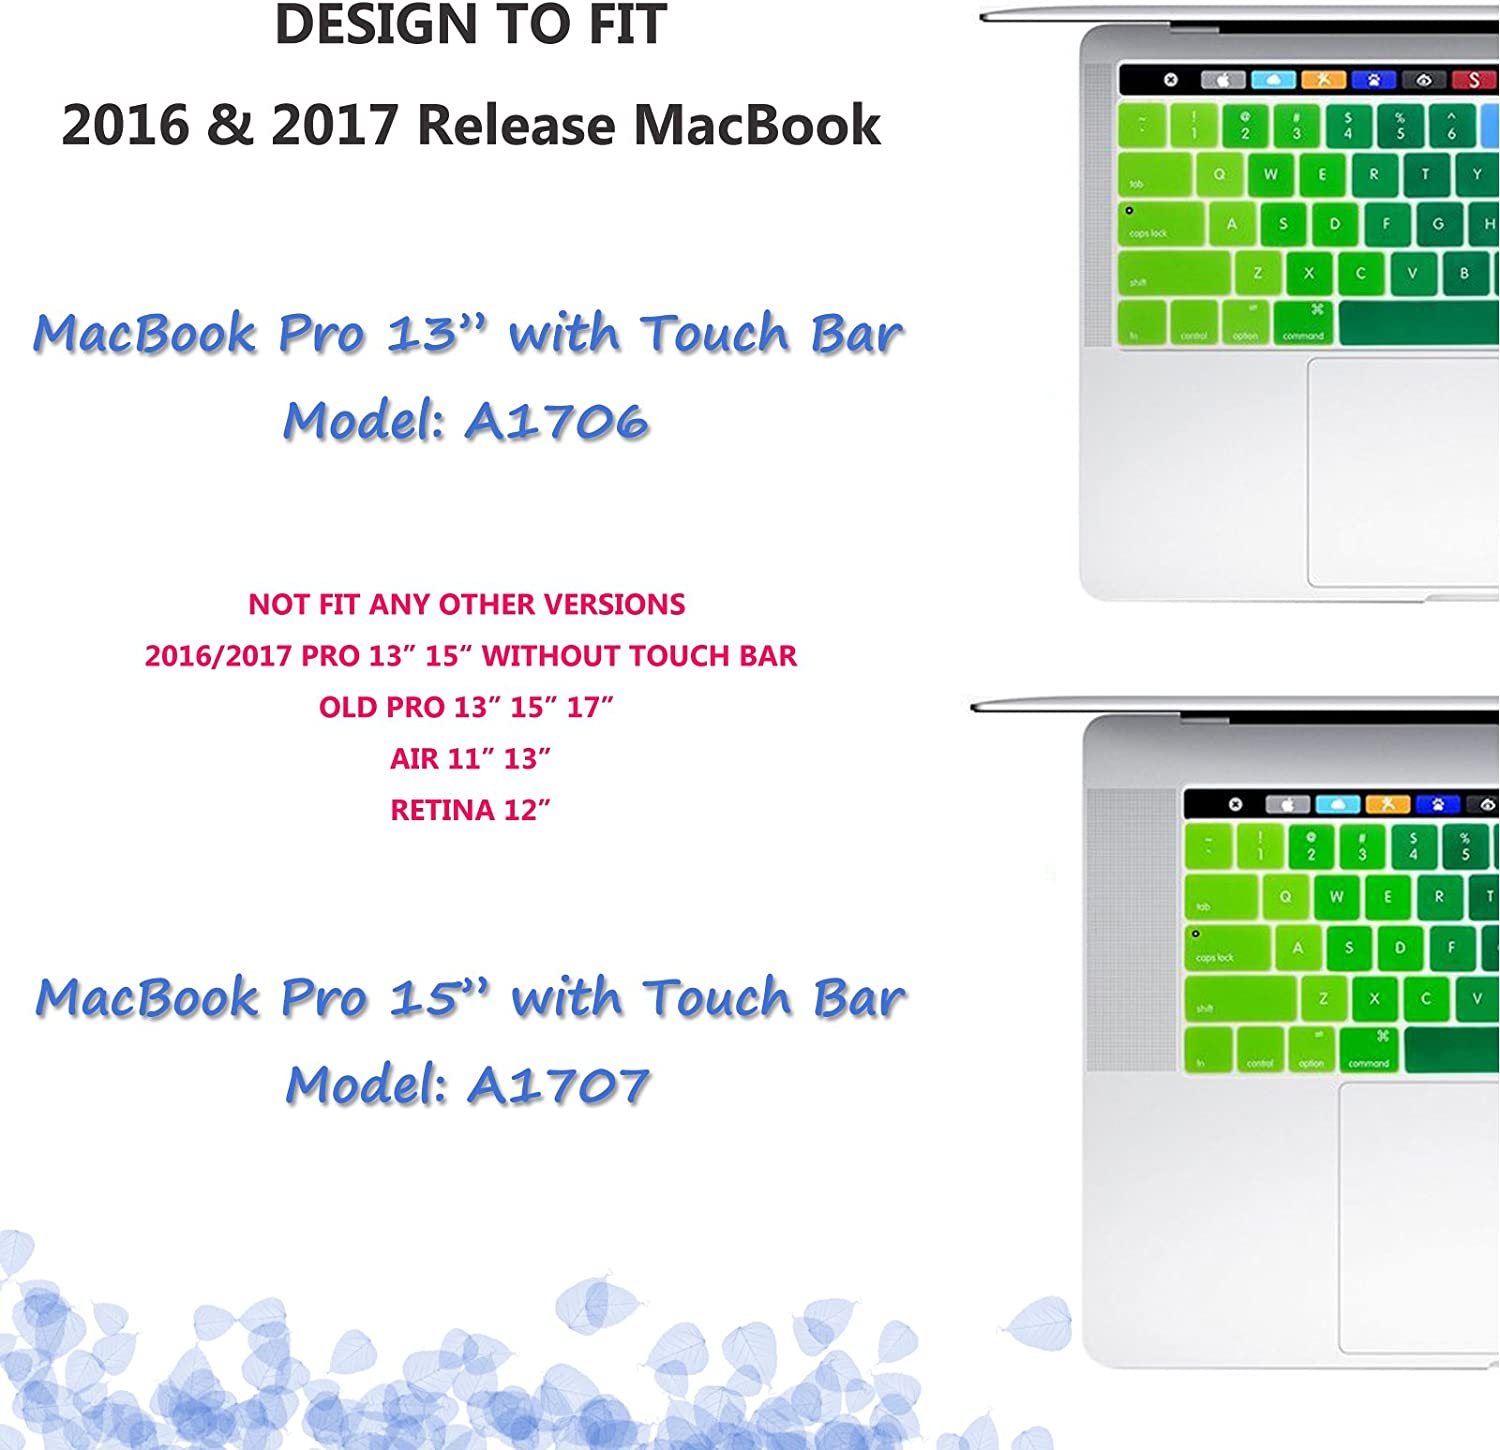 YMIX MacBook Keyboard Cover for Touch Bar Models 2017 /& 2016 Release MacBook Pro 13 Rainbow /& MacBook Pro 15 A1706 with Touch ID Dust Proof Silicone Keyboard Skin A1707